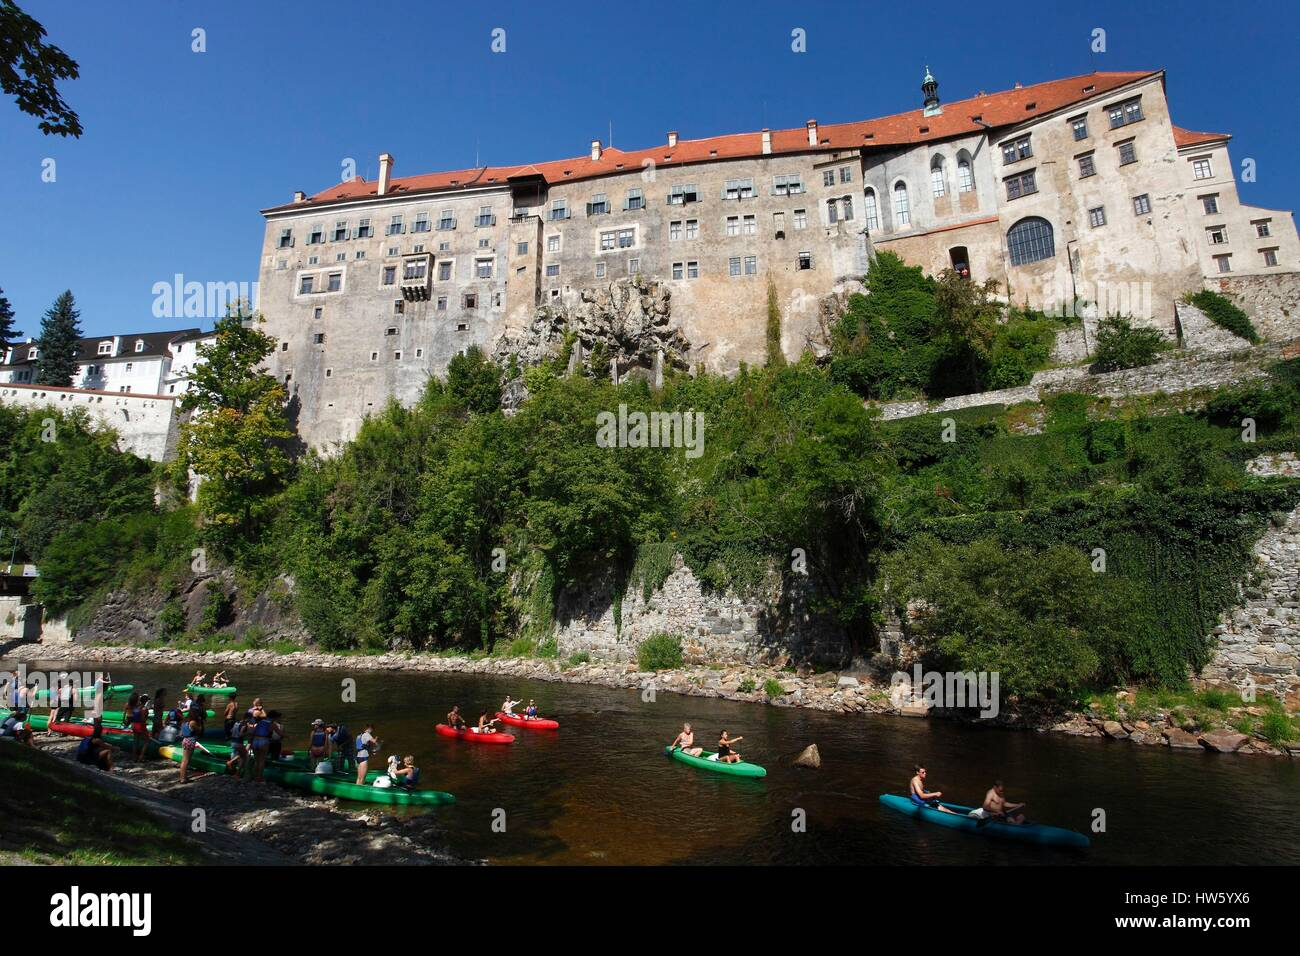 Czech Republic, South Bohemia, Cesky Krumlov, historical center listed as World Heritage by UNESCO, the castle, - Stock Image